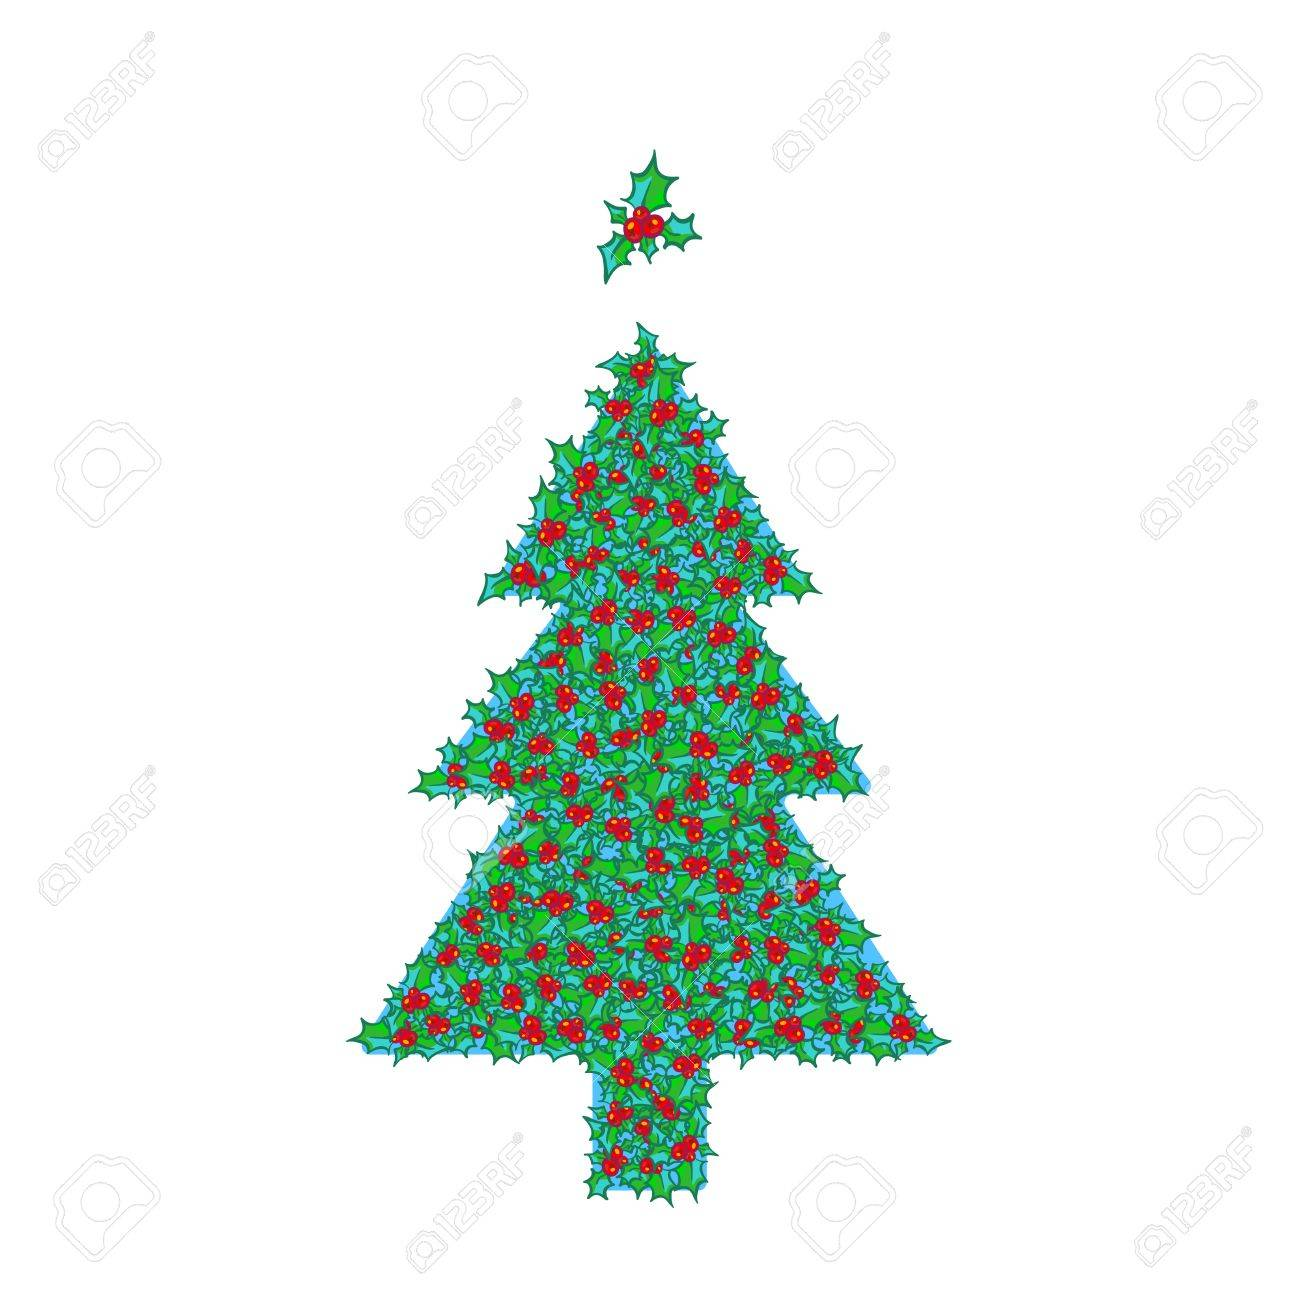 Holly Christmas Tree With Tree Topper Ornament Vector Hand Drawn